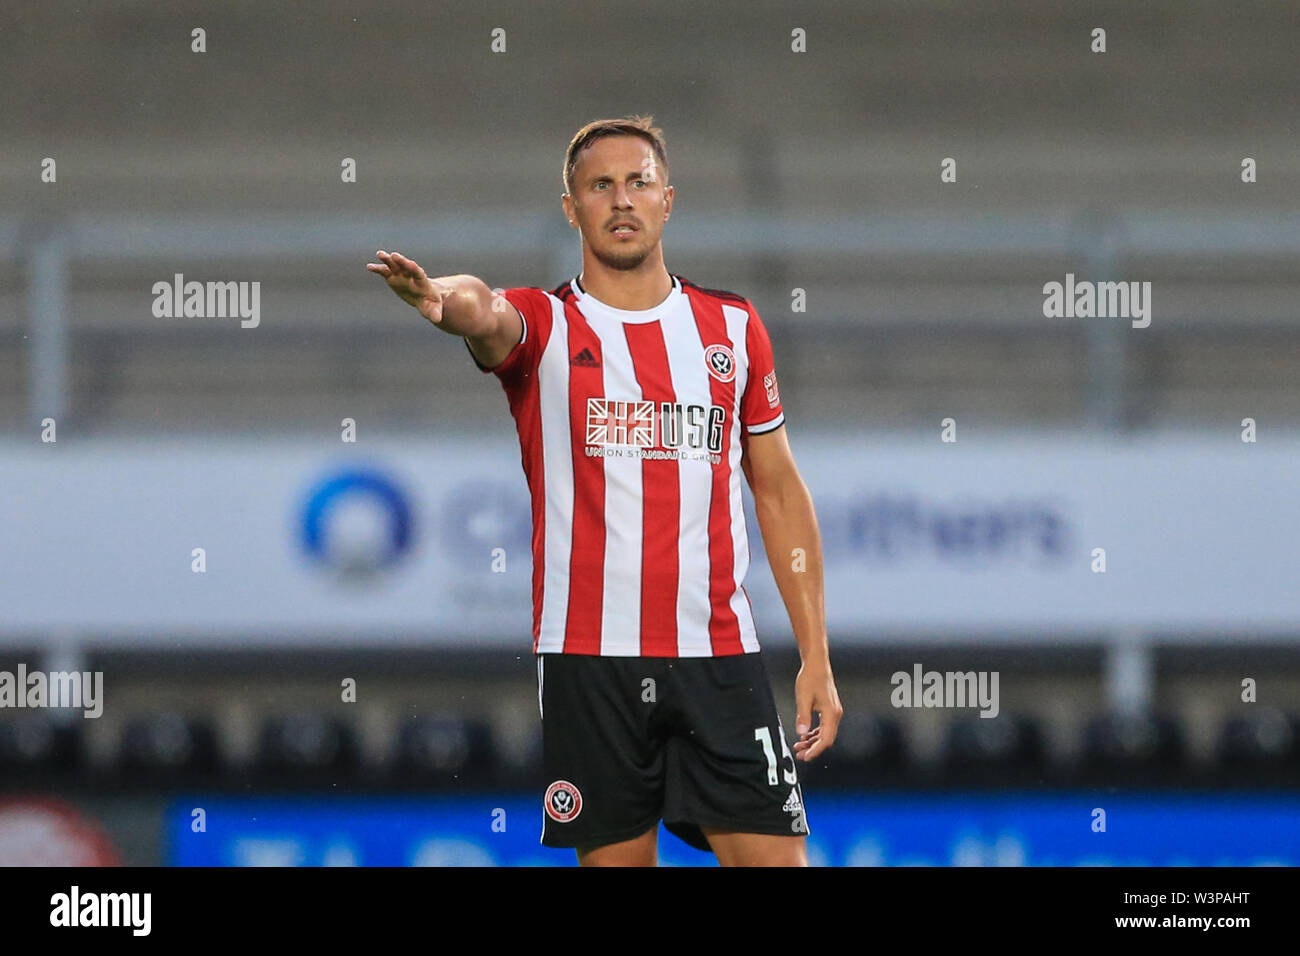 16th July 2019, Pirelli Stadium, Burton upon Trent, England; Pre-Season friendly, Burton Albion vs Sheffield United : Phil Jagielka of Sheffield United gives his team instructions  Credit: Mark Cosgrove/News Images  English Football League images are subject to DataCo Licence - Stock Image